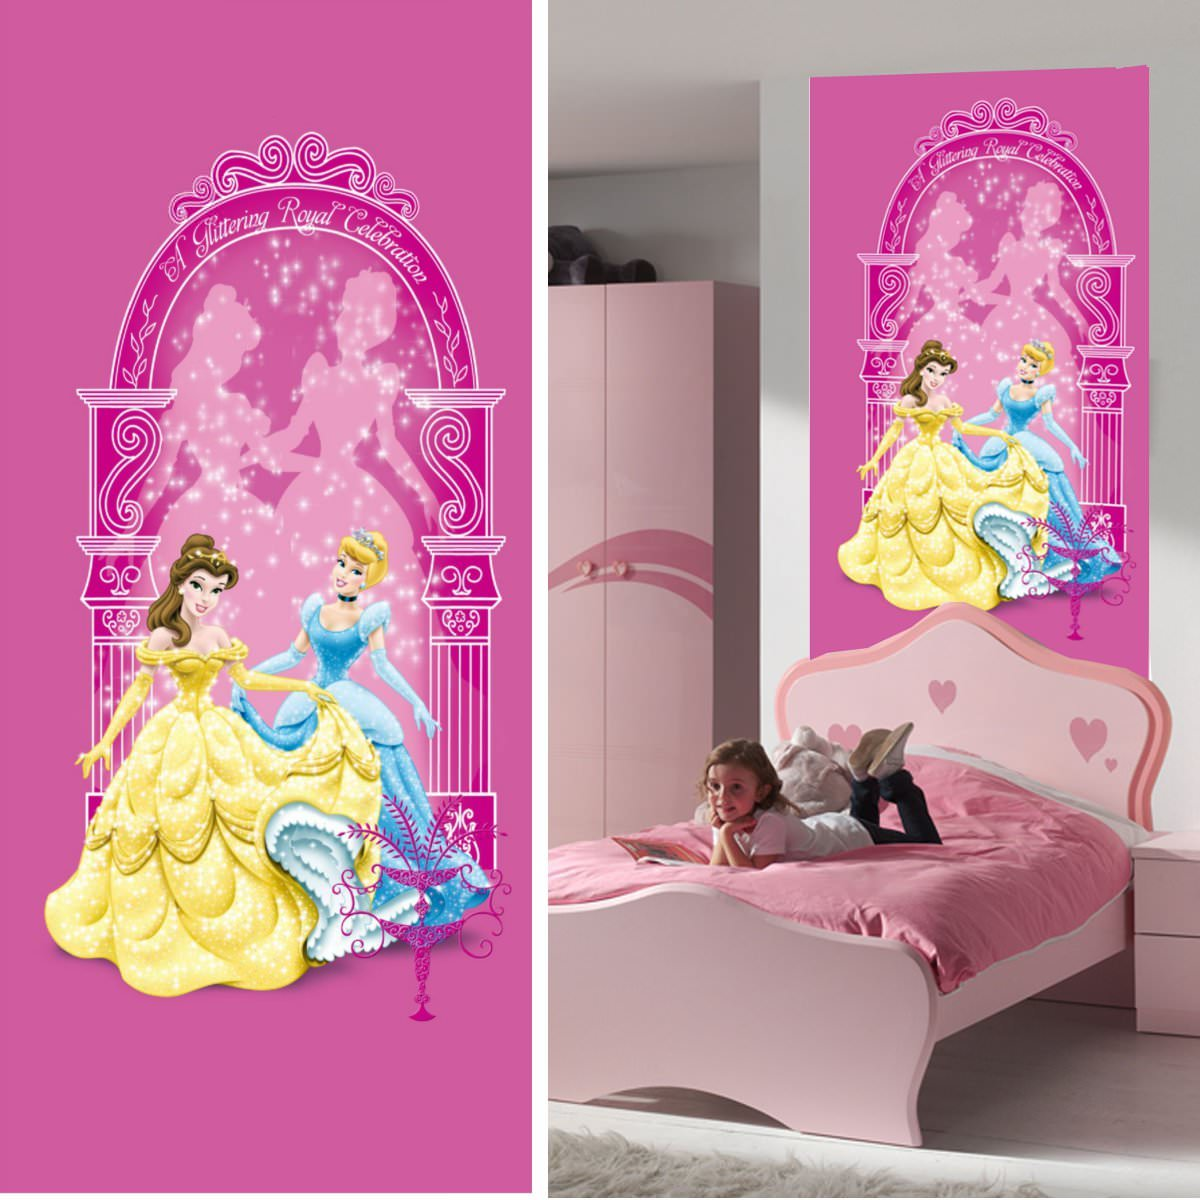 Disney princesse d coration murale poster de porte for Decoration porte de chambre